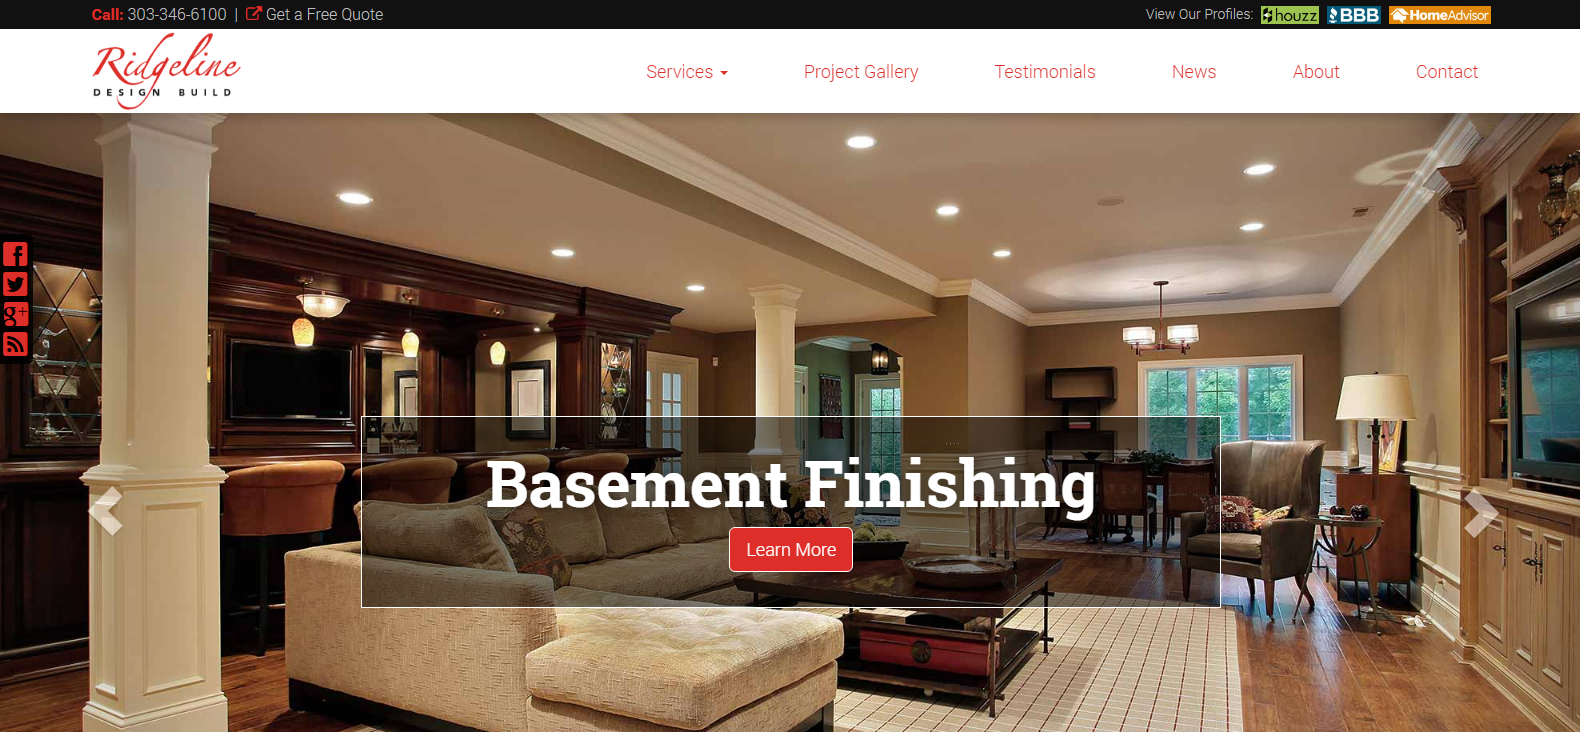 New Website Launched: Ridgeline Remodeling, Inc.